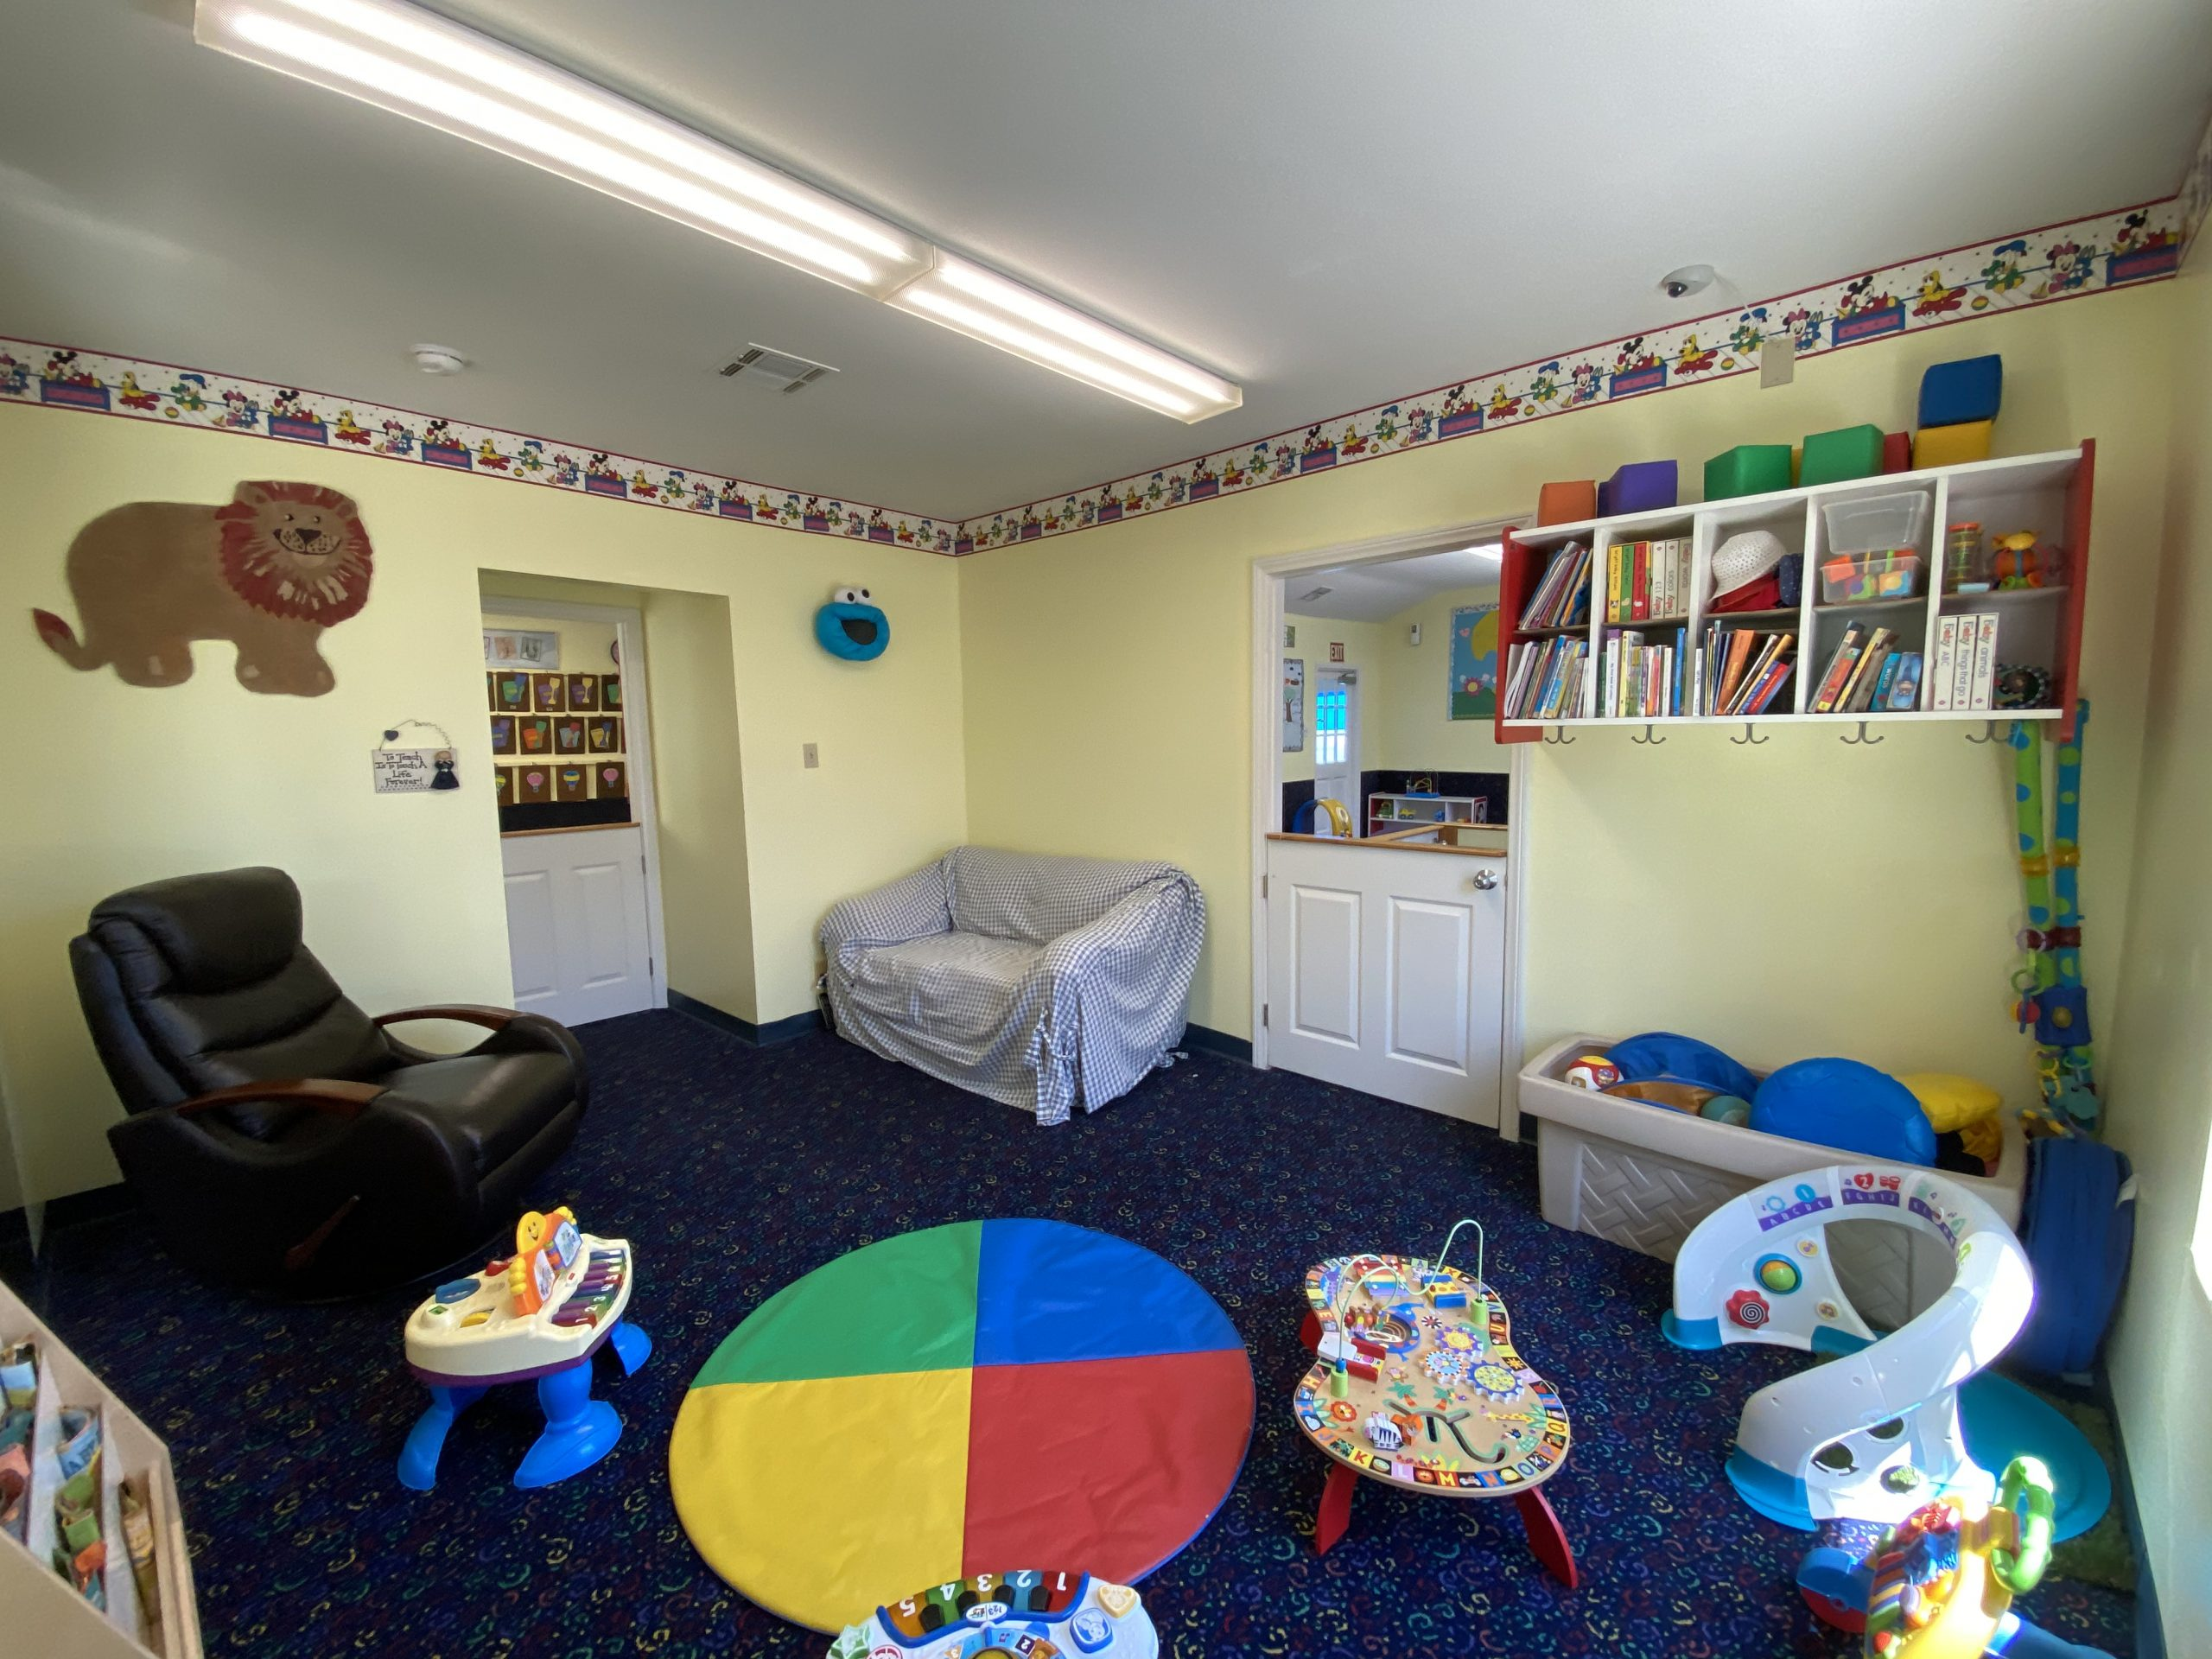 Nursing room in daycare preschool